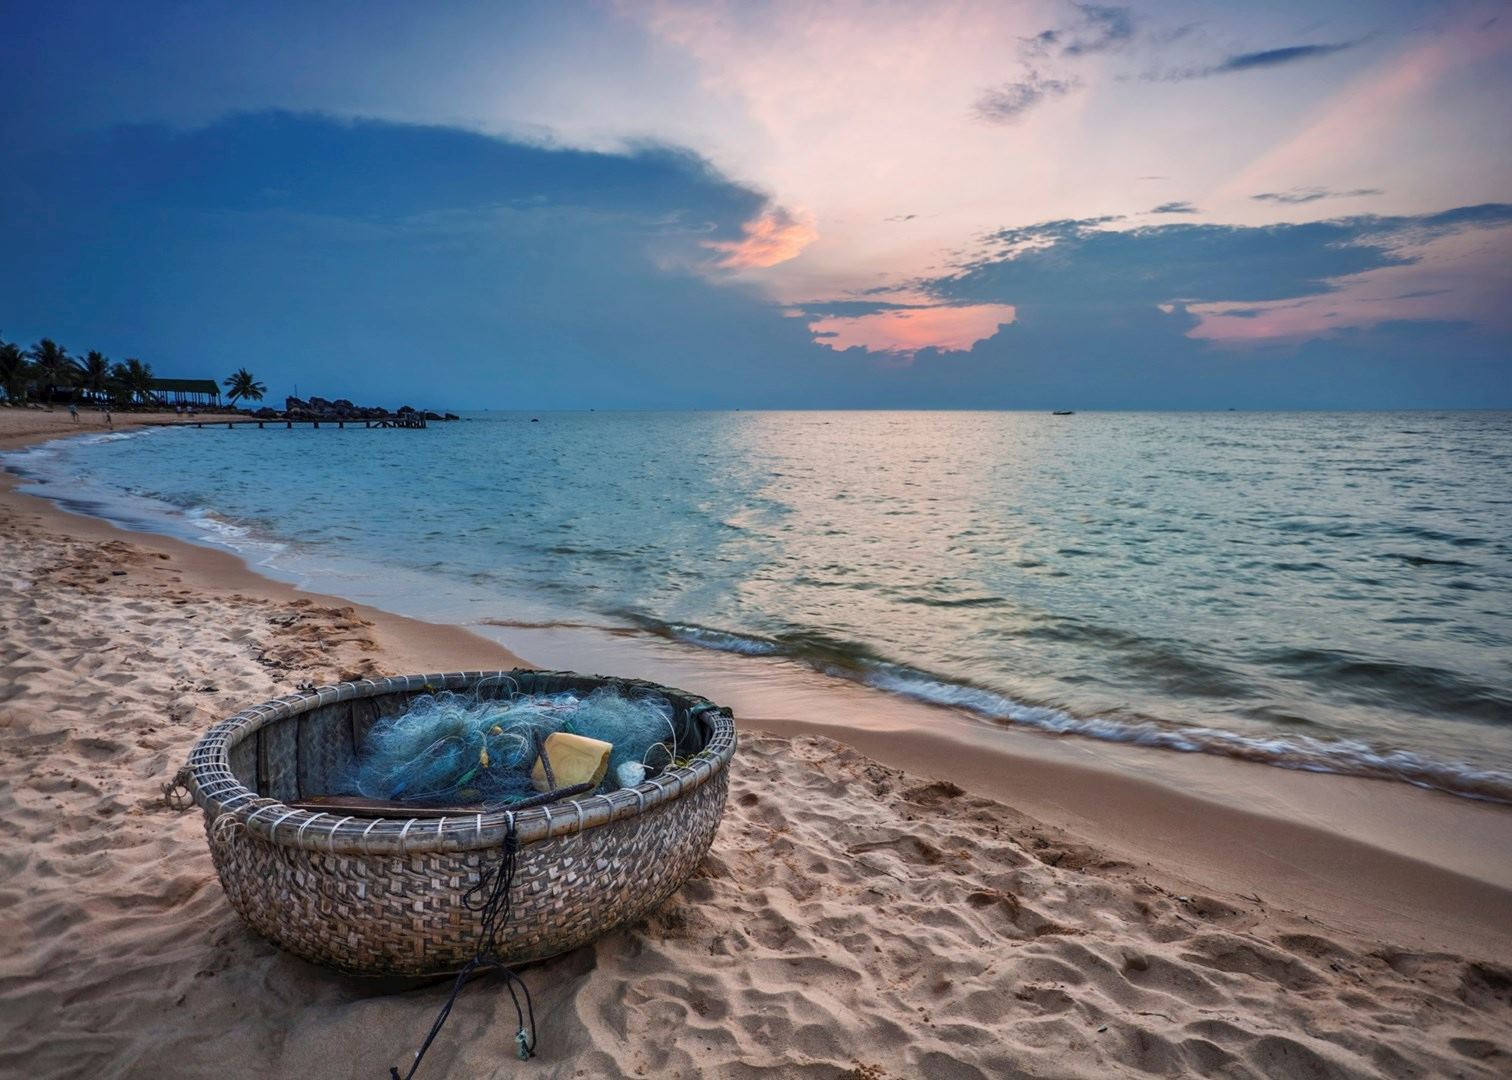 Visit Phu Quoc on a trip to Vietnam | Audley Travel